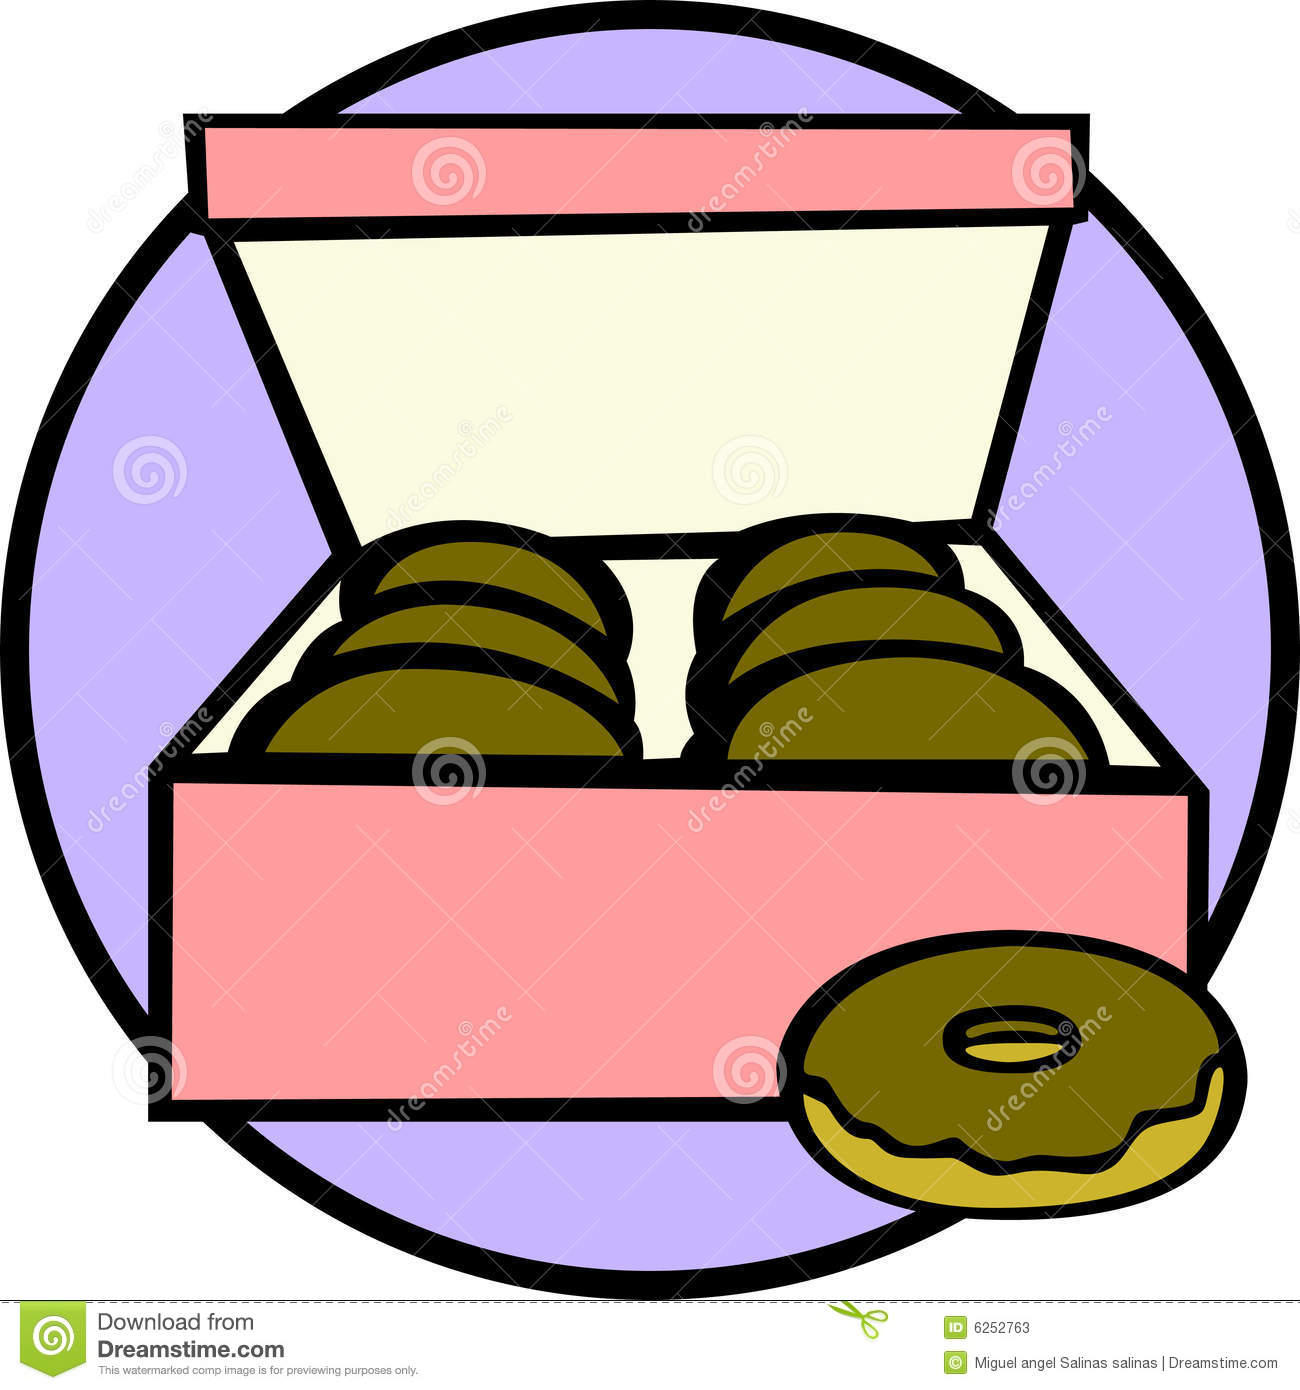 Box Of Donuts Clipart Box Of Donuts Vector